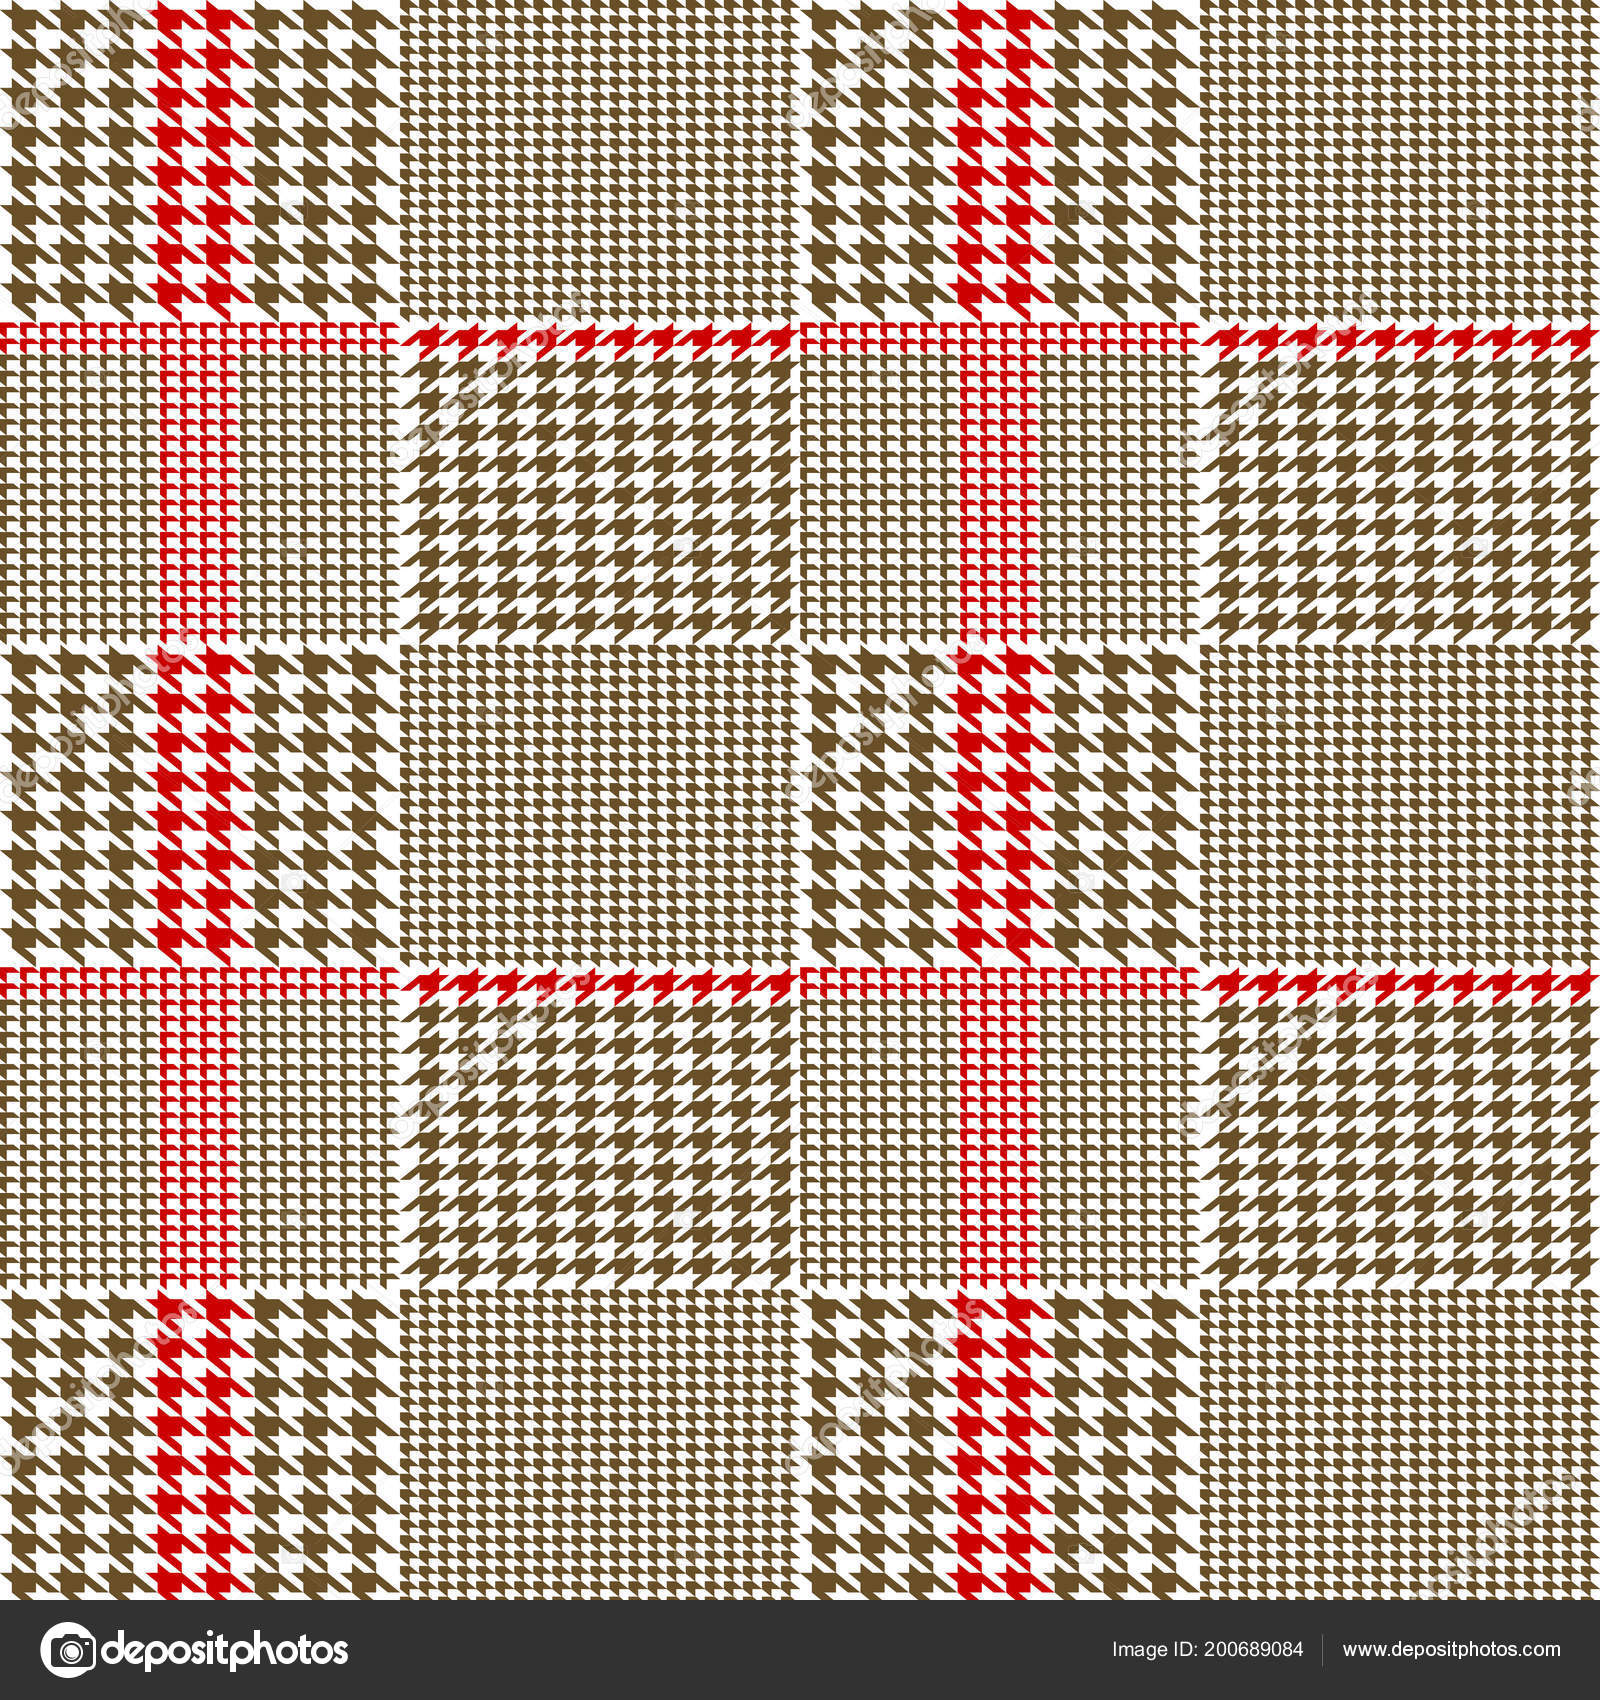 Creative vector illustration of fabric houndstooth seamless vector pattern  background. Geometric print hounds tooth art design. 54c455522